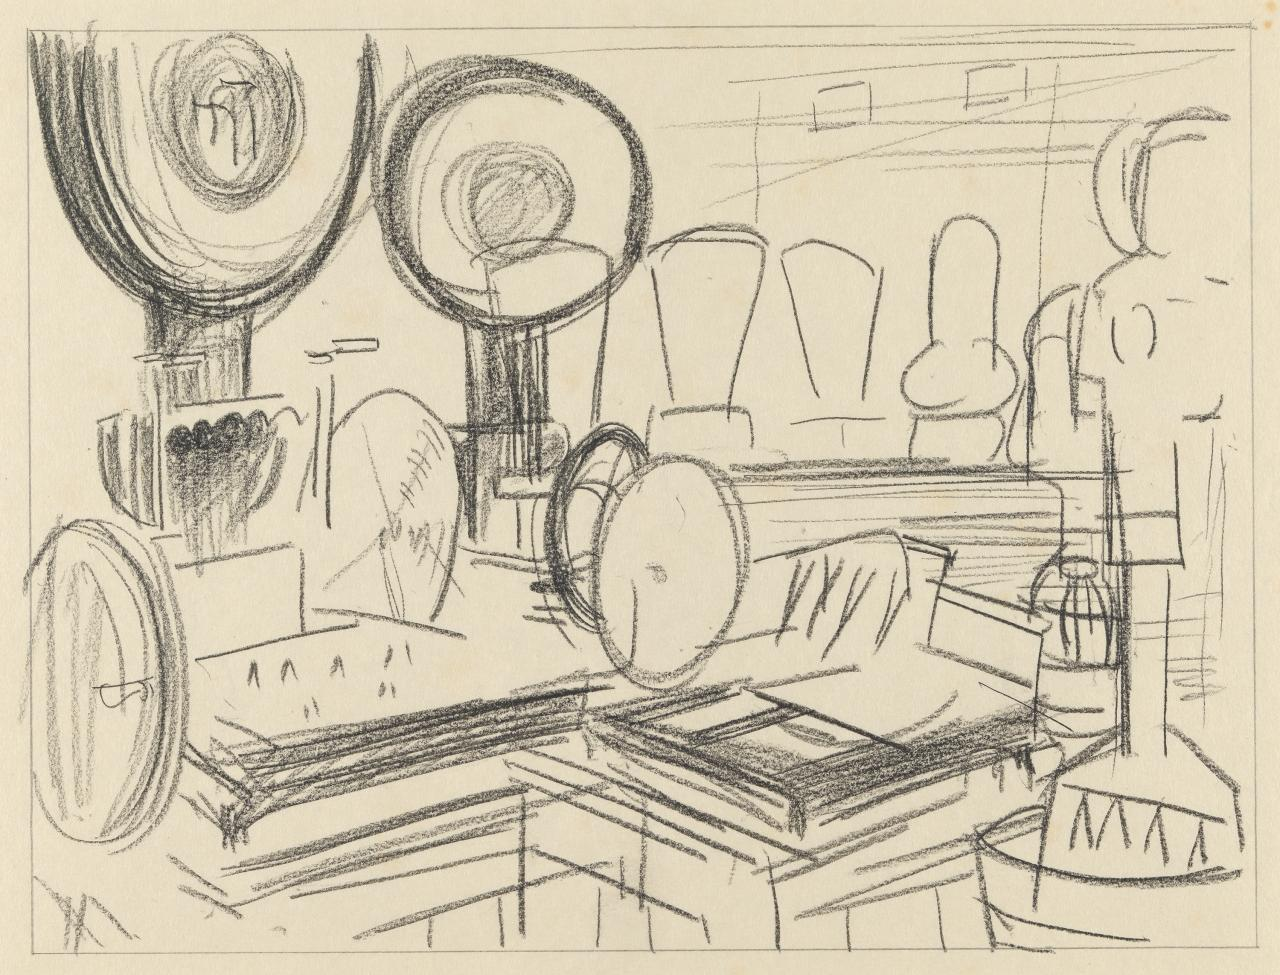 (Study for The slicing machine shop)